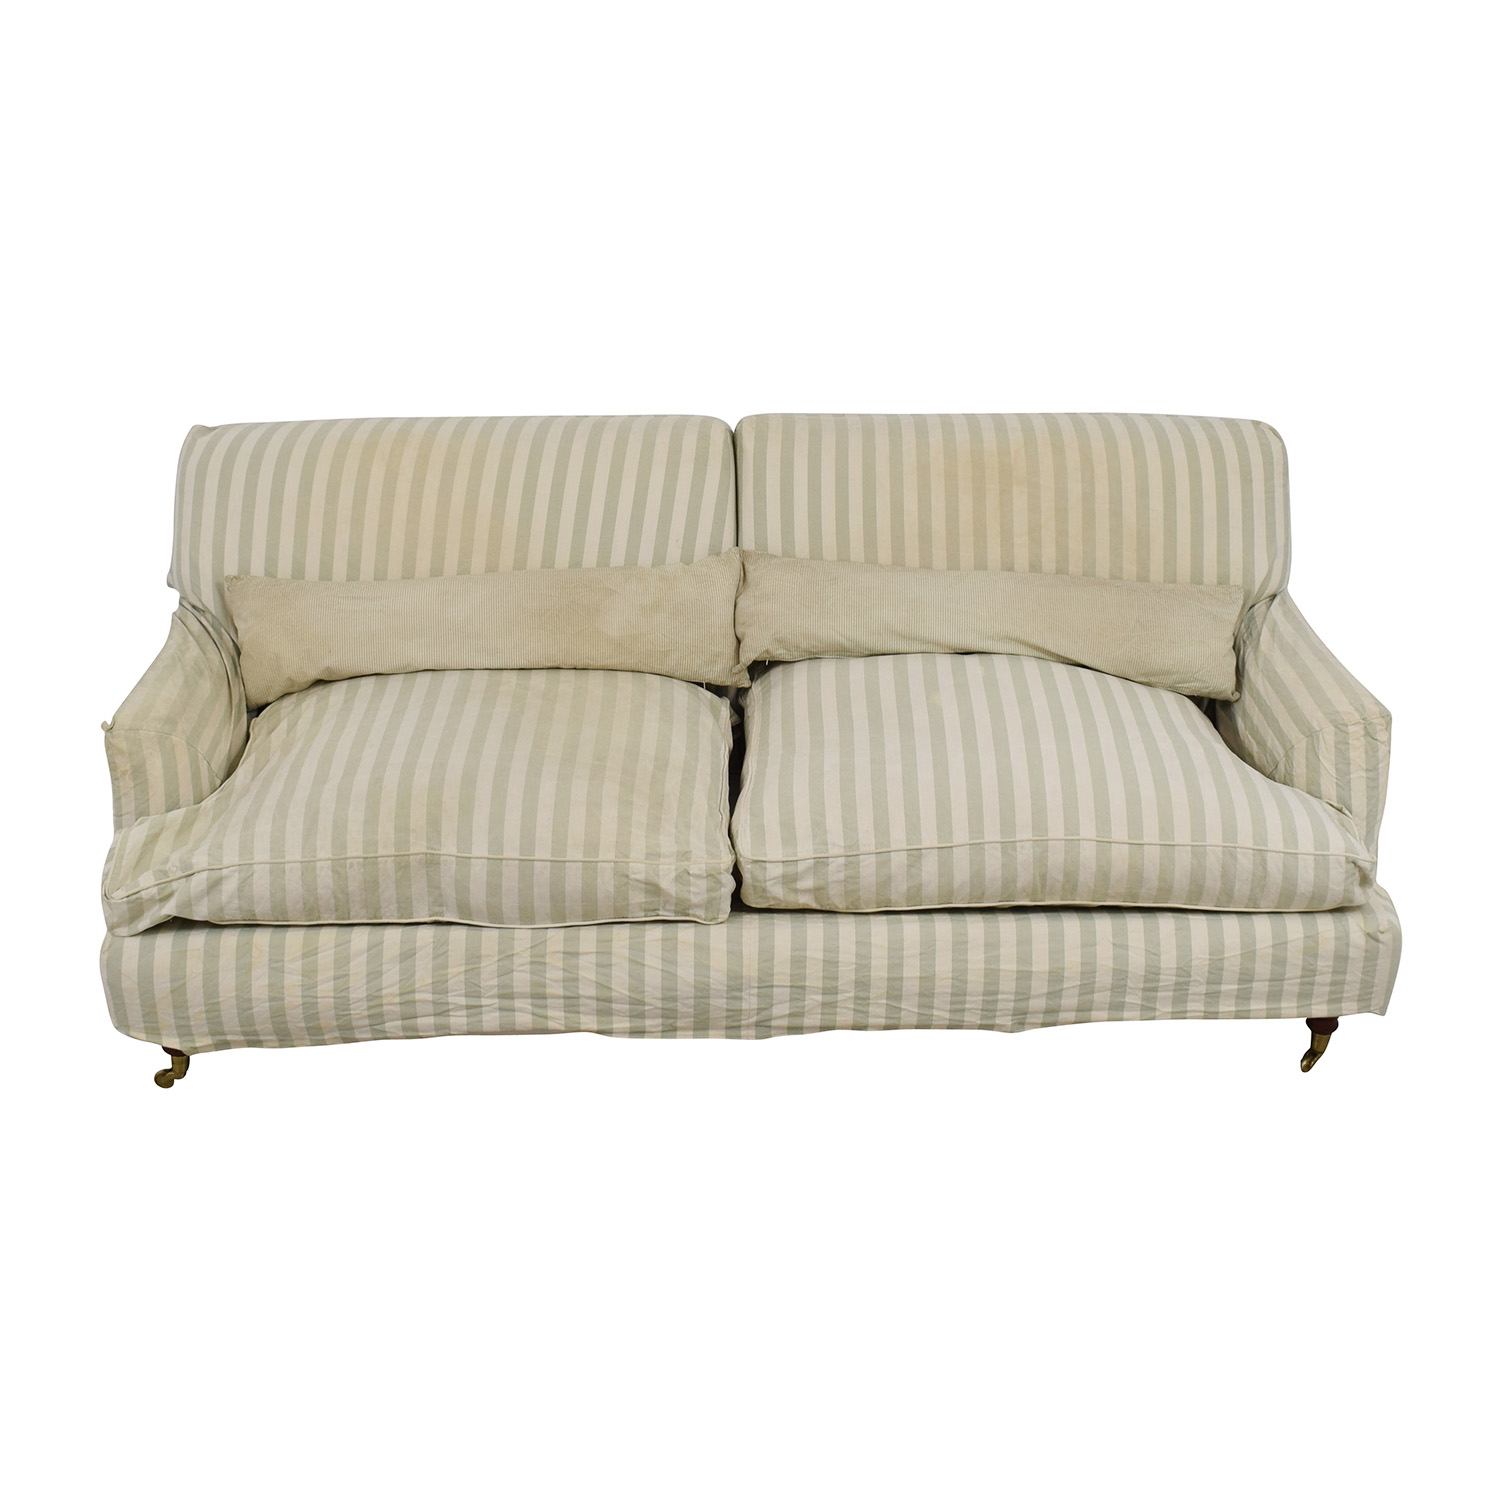 buy Green and White Striped English Roll-arm Sofa